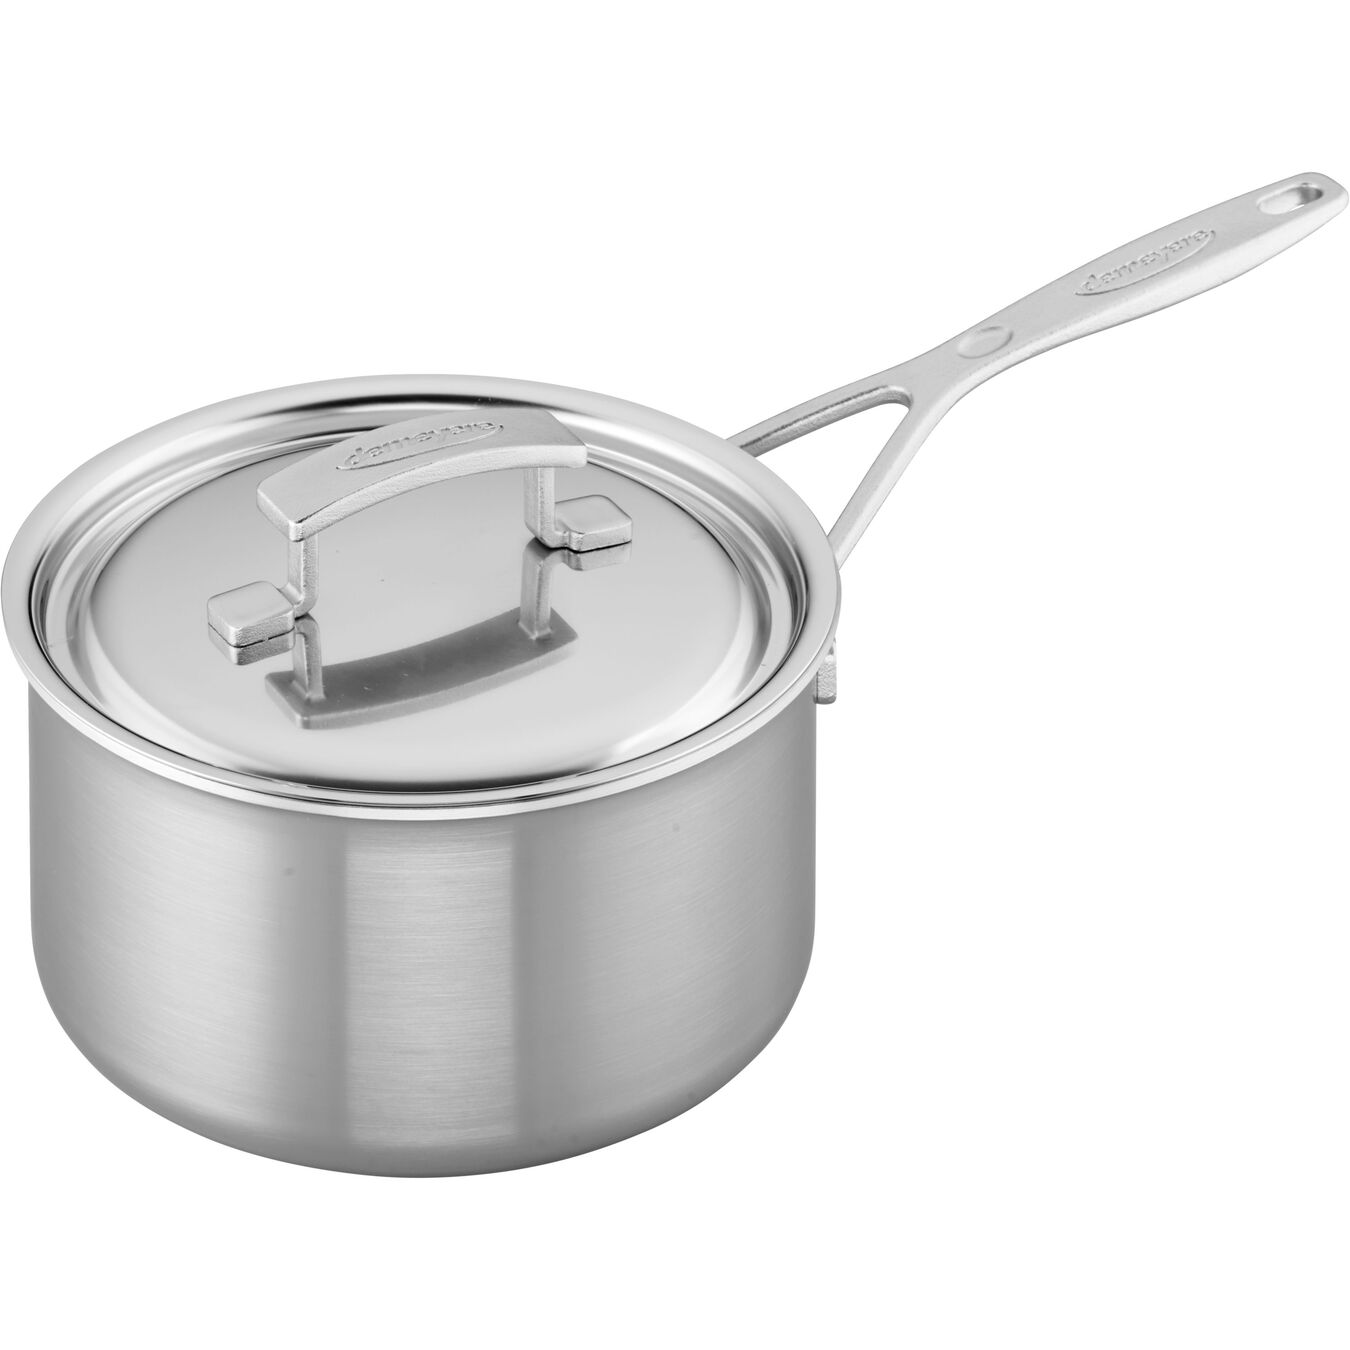 3-qt Stainless Steel Saucepan,,large 1